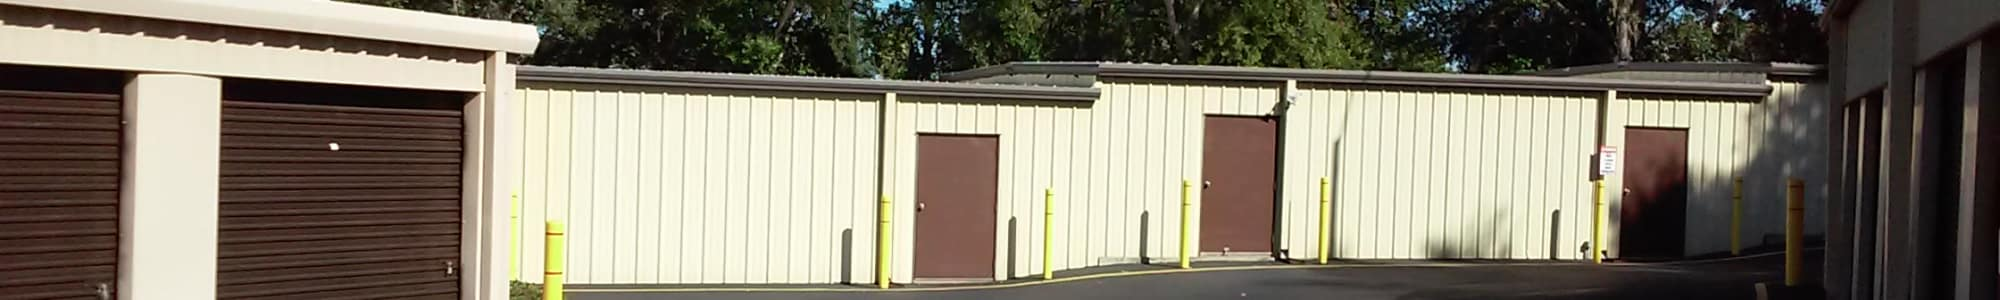 Self storage units for rent in Tavares, FL